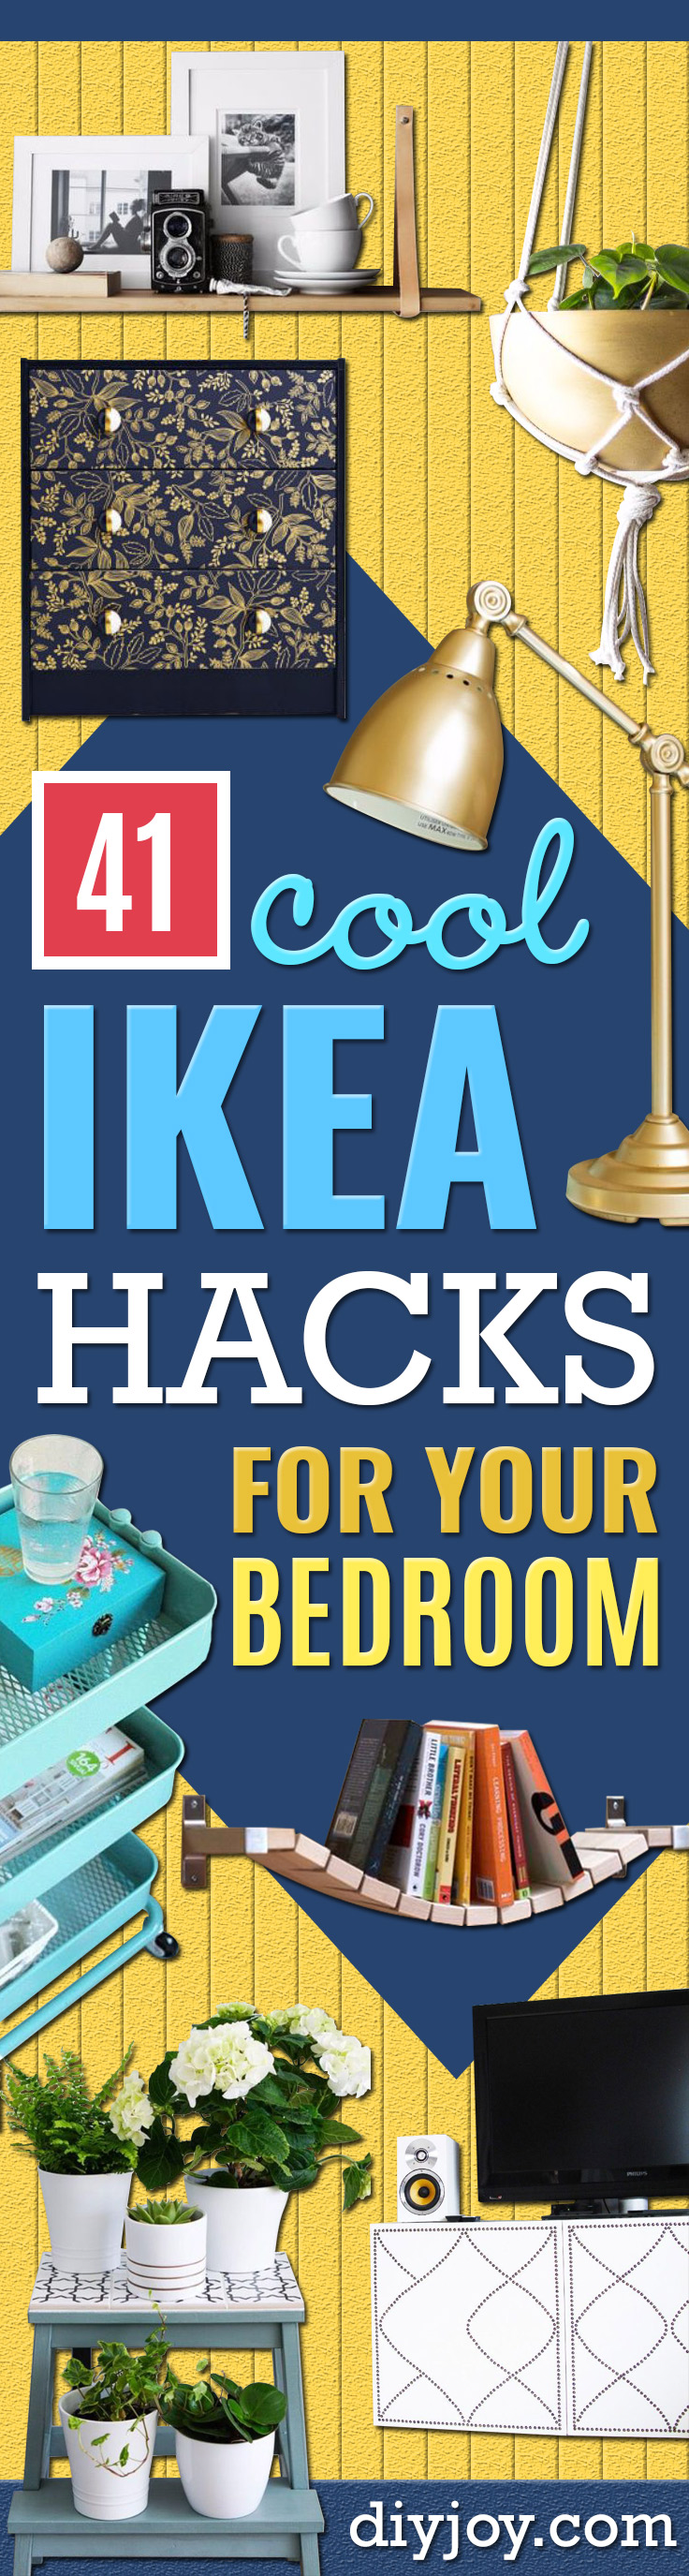 41 IKEA Hacks For DIY Bedroom Decor- Best IKEA Furniture Hack Ideas for Bed, Storage, Nightstnad, Closet System and Storage, Dresser, Vanity, Wall Art and Kids Rooms - Easy and Cheap DIY Projects for Affordable Room and Home Decor